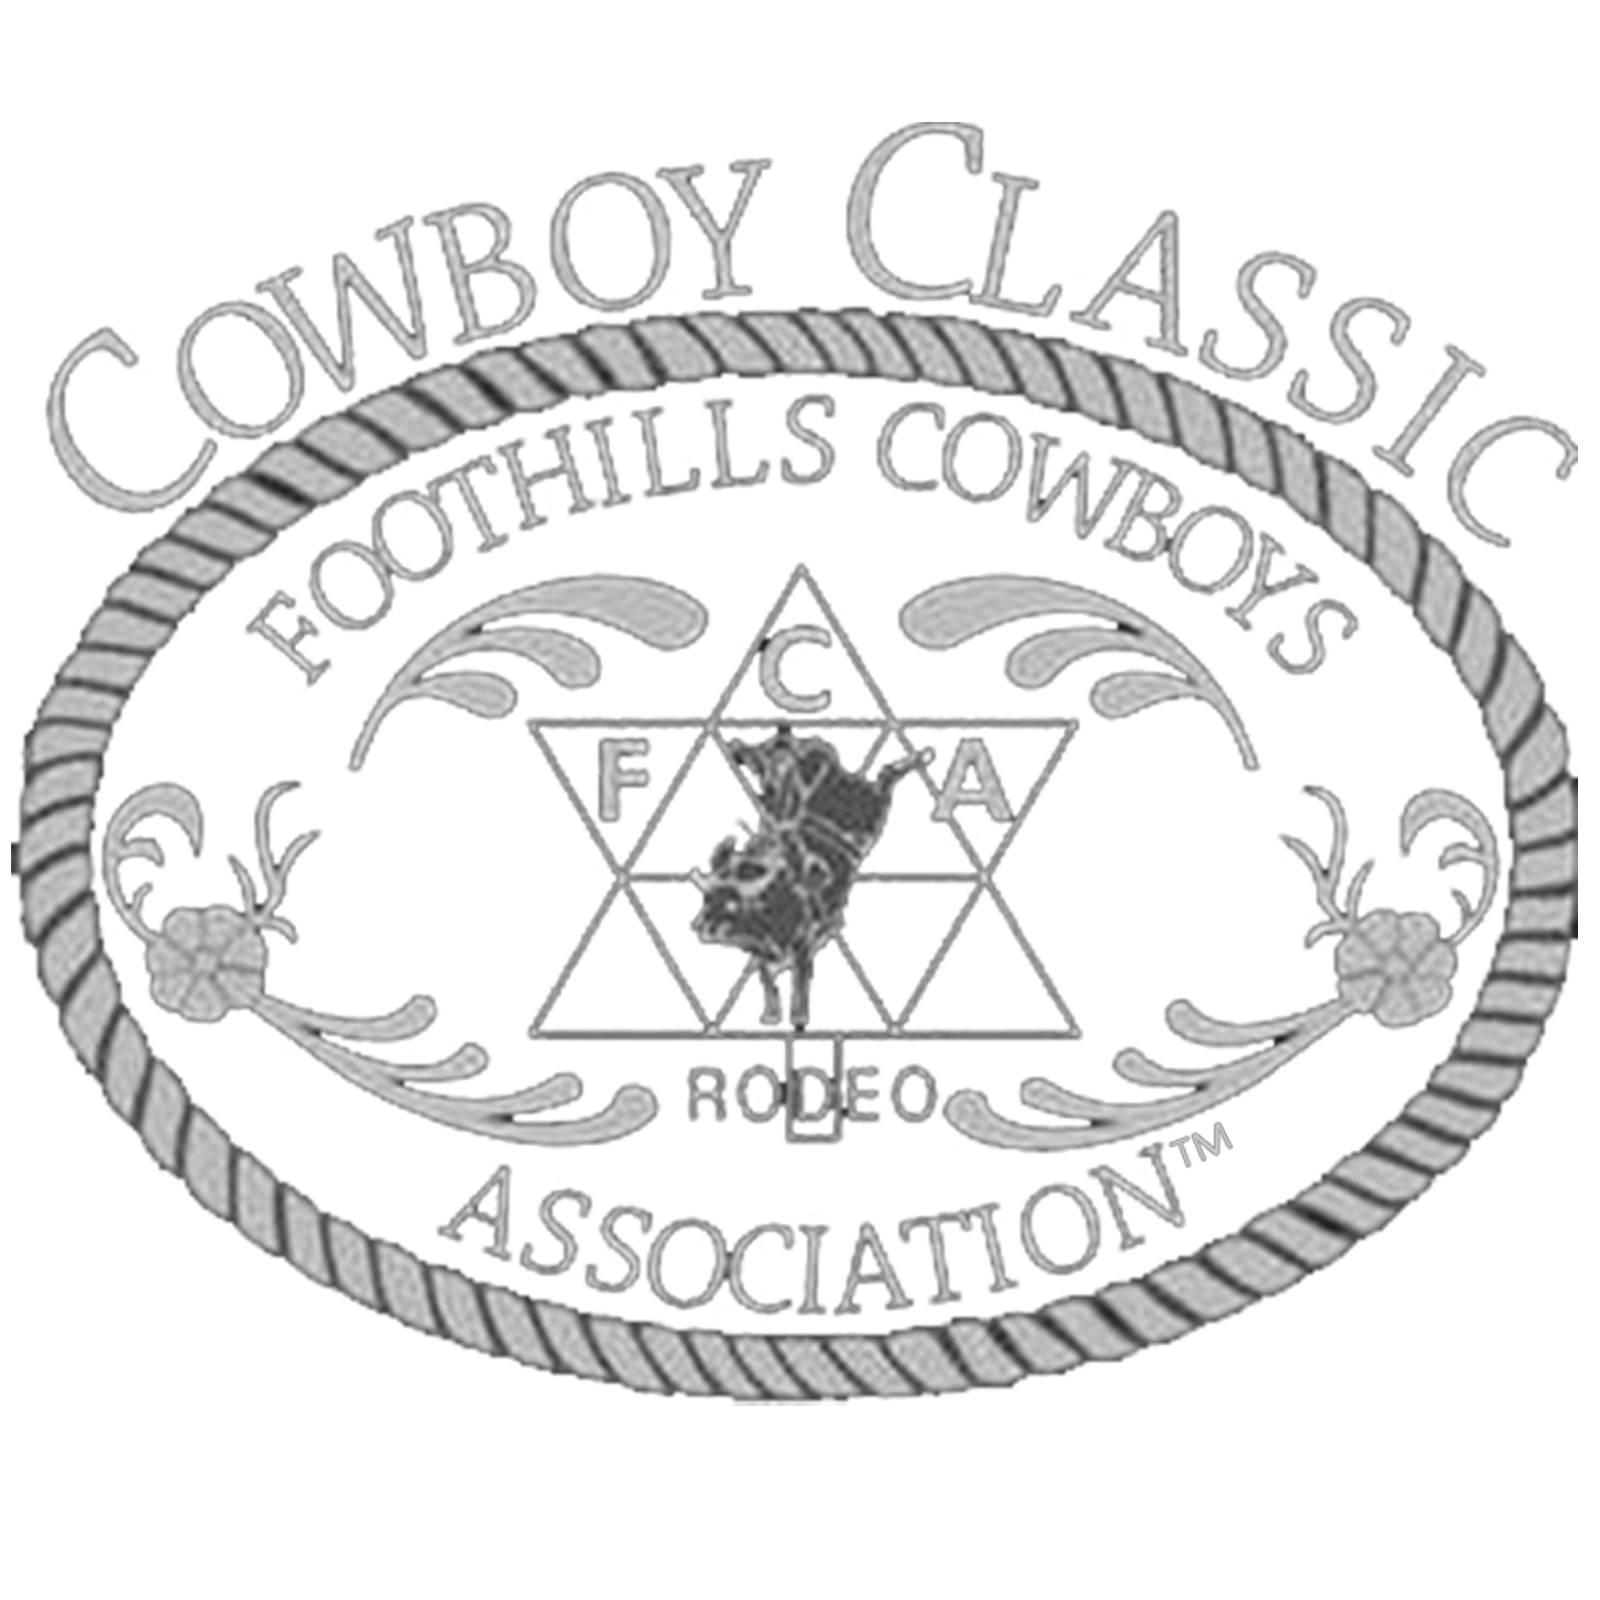 Golfer drawing rodeo. Foothills cowboys association